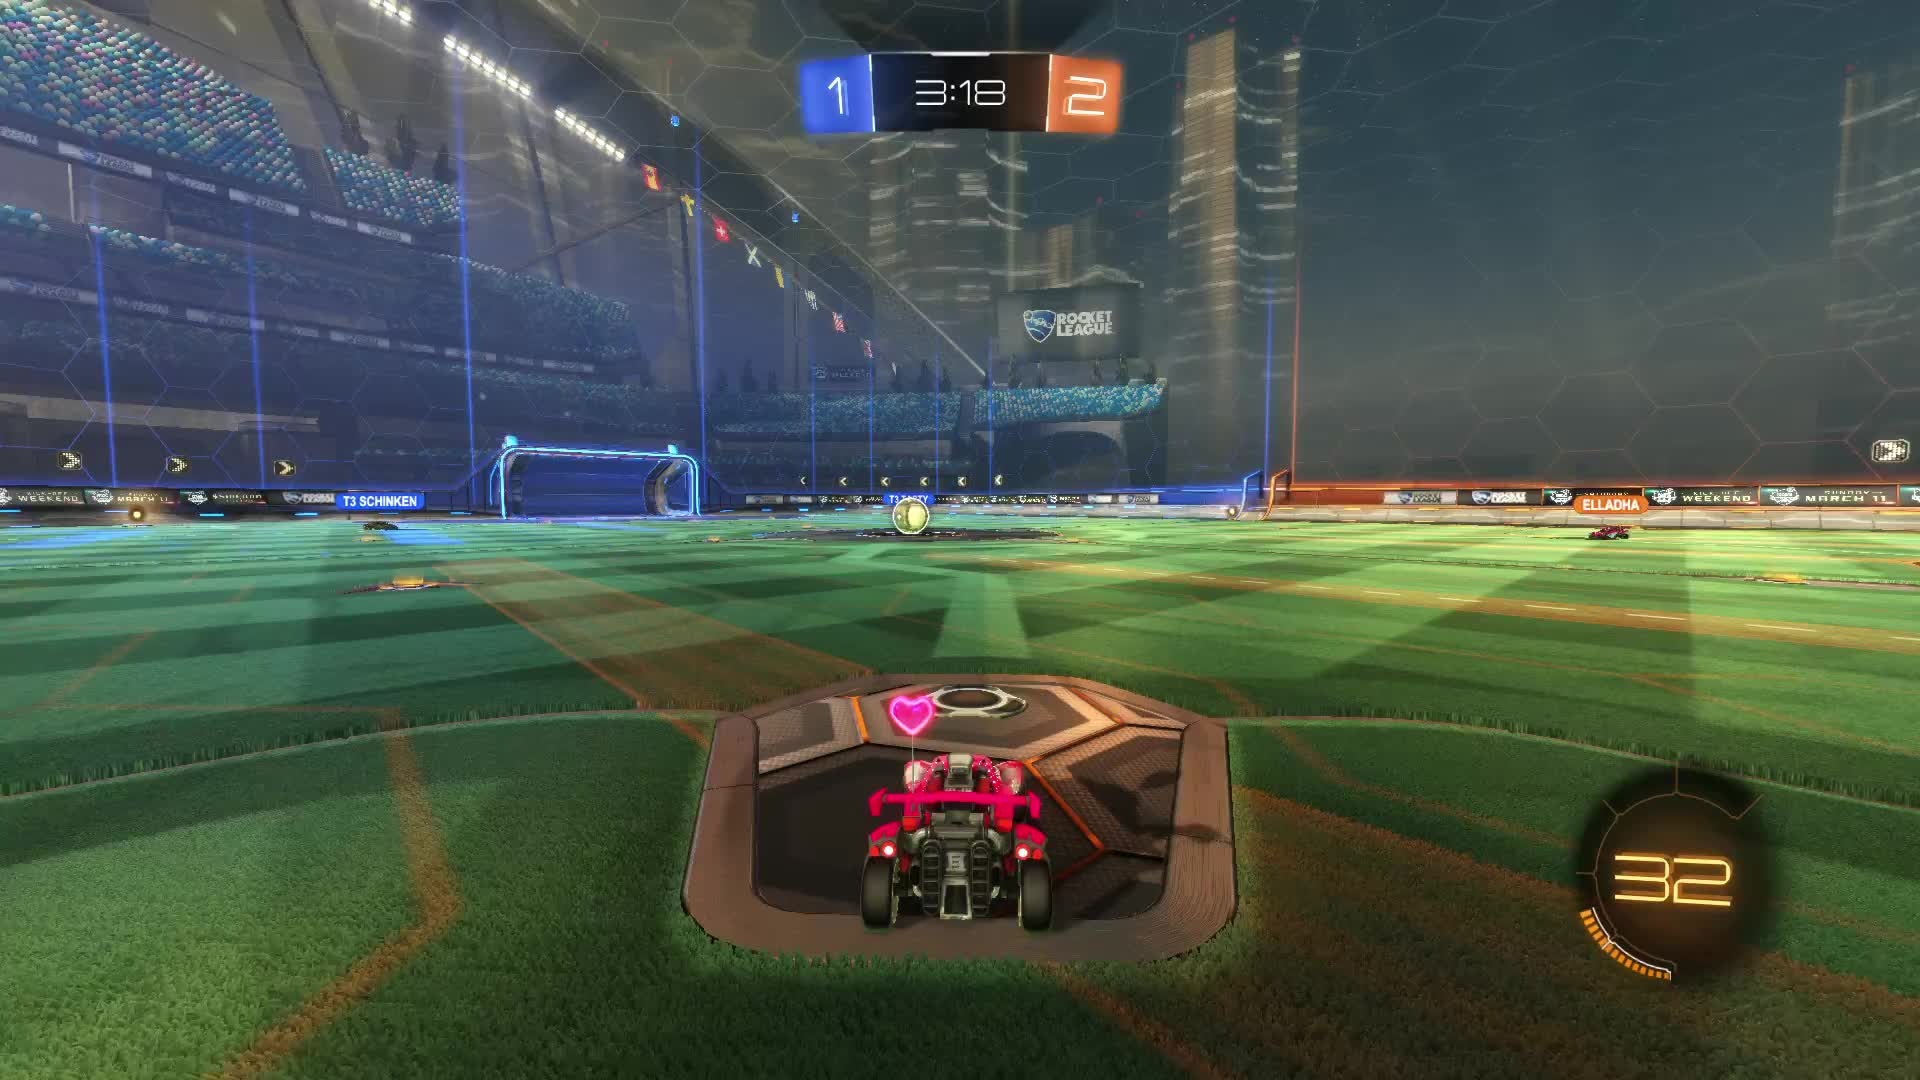 rocketleague, Videos (36) GIFs